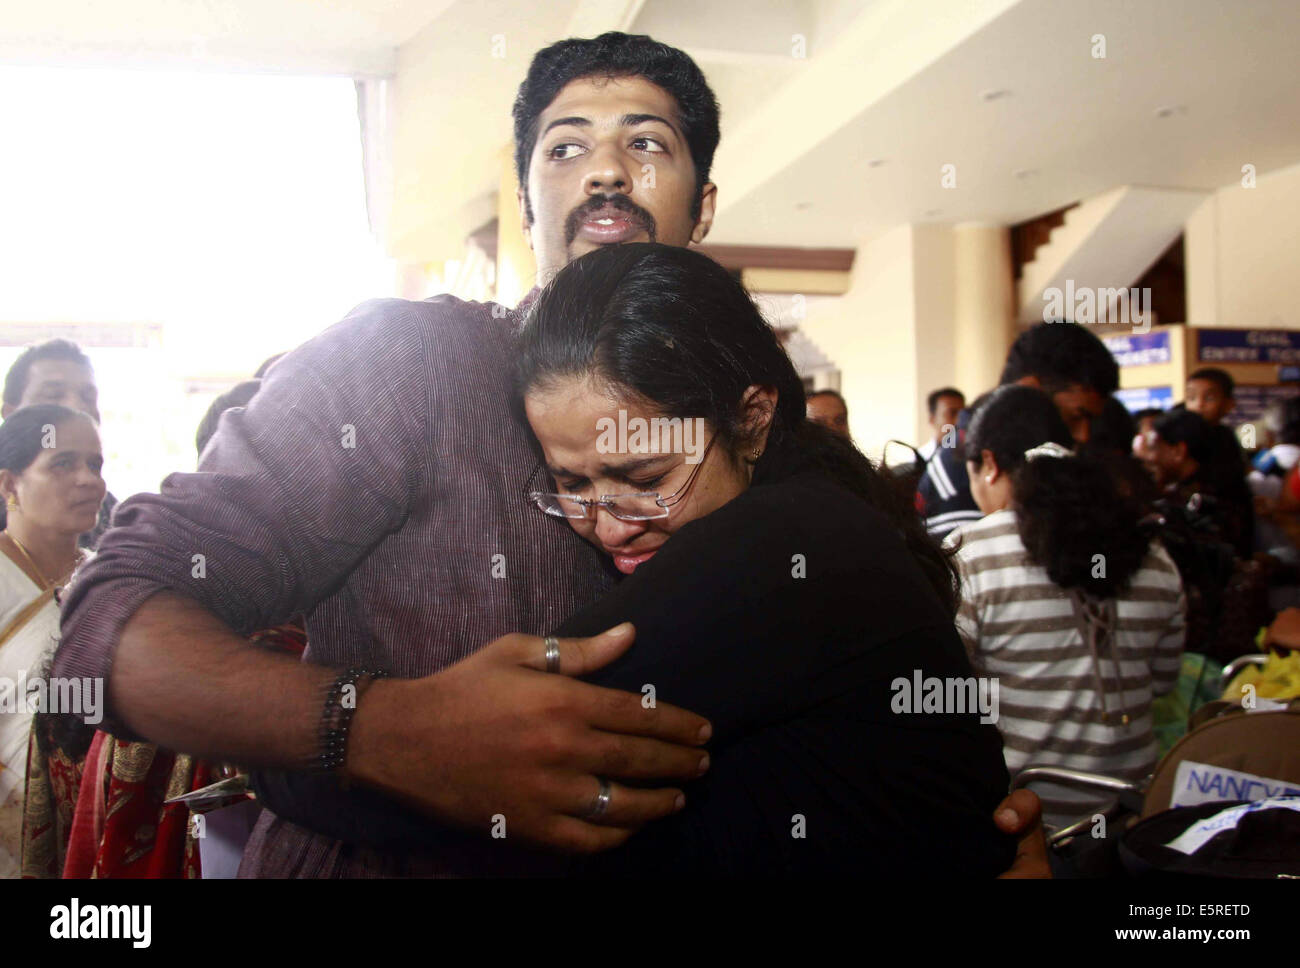 Kochi. 5th Aug, 2014. One of the 44 Indian nurses evacuated from war torn country Libya hugs her relative on her - Stock Image